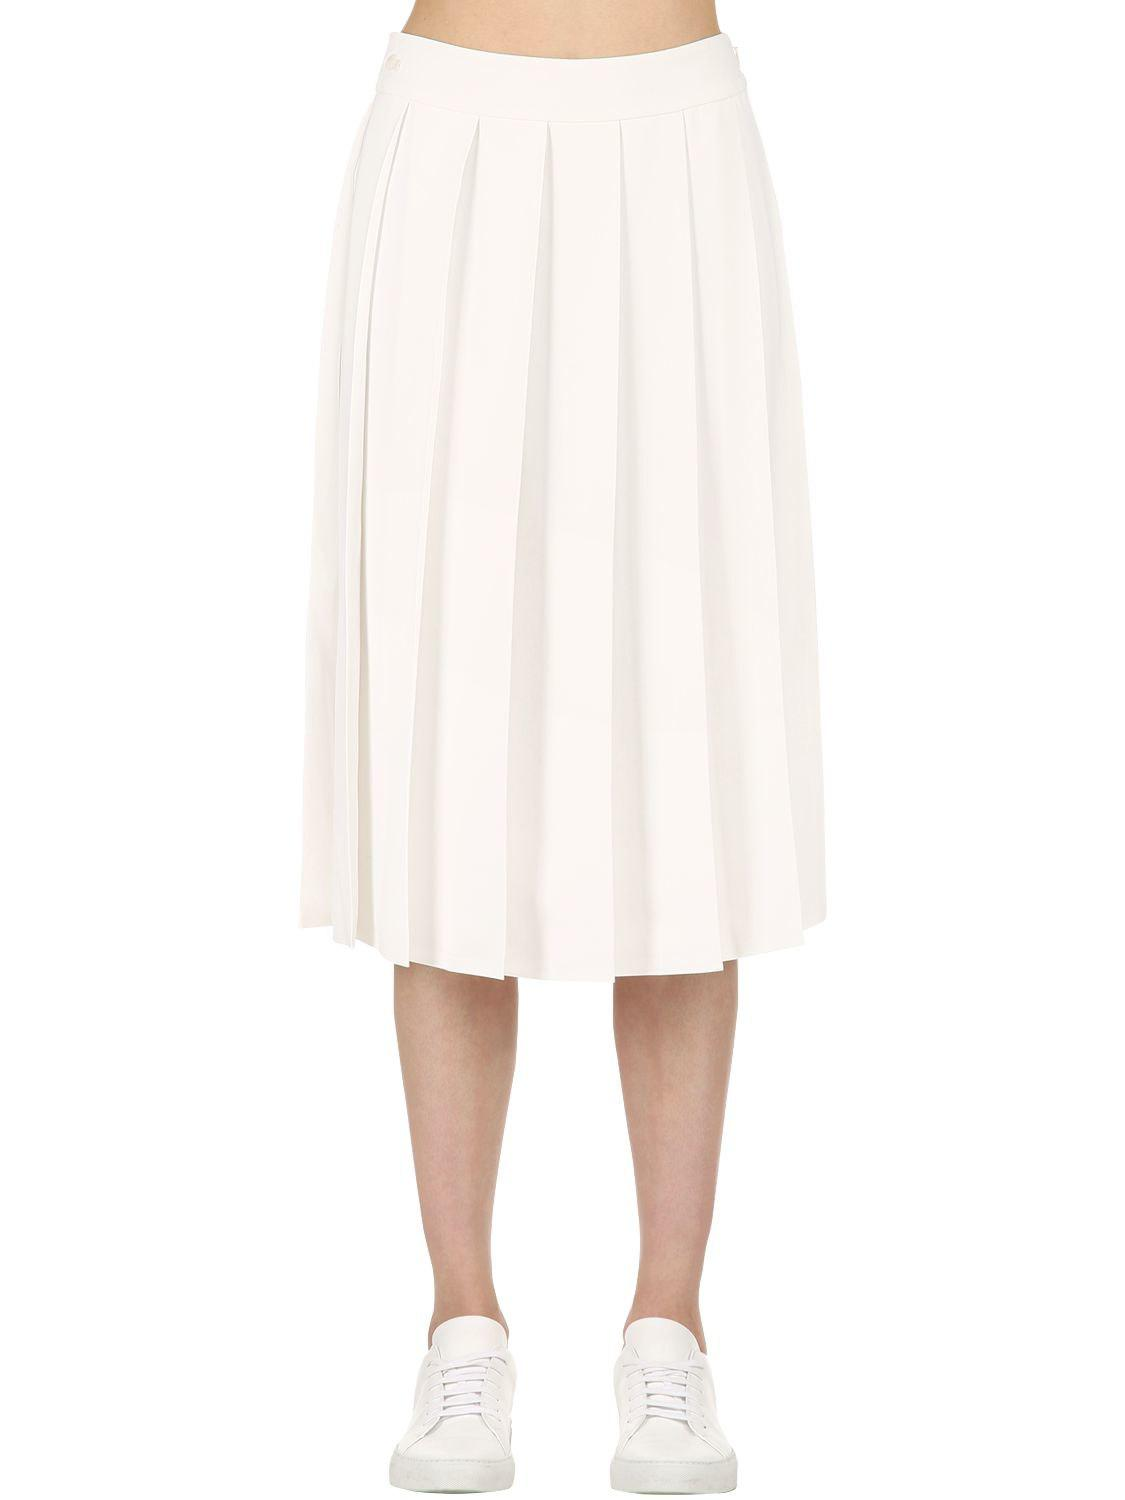 8bba977be1 Lacoste Pleated Muslin Skirt in White - Lyst